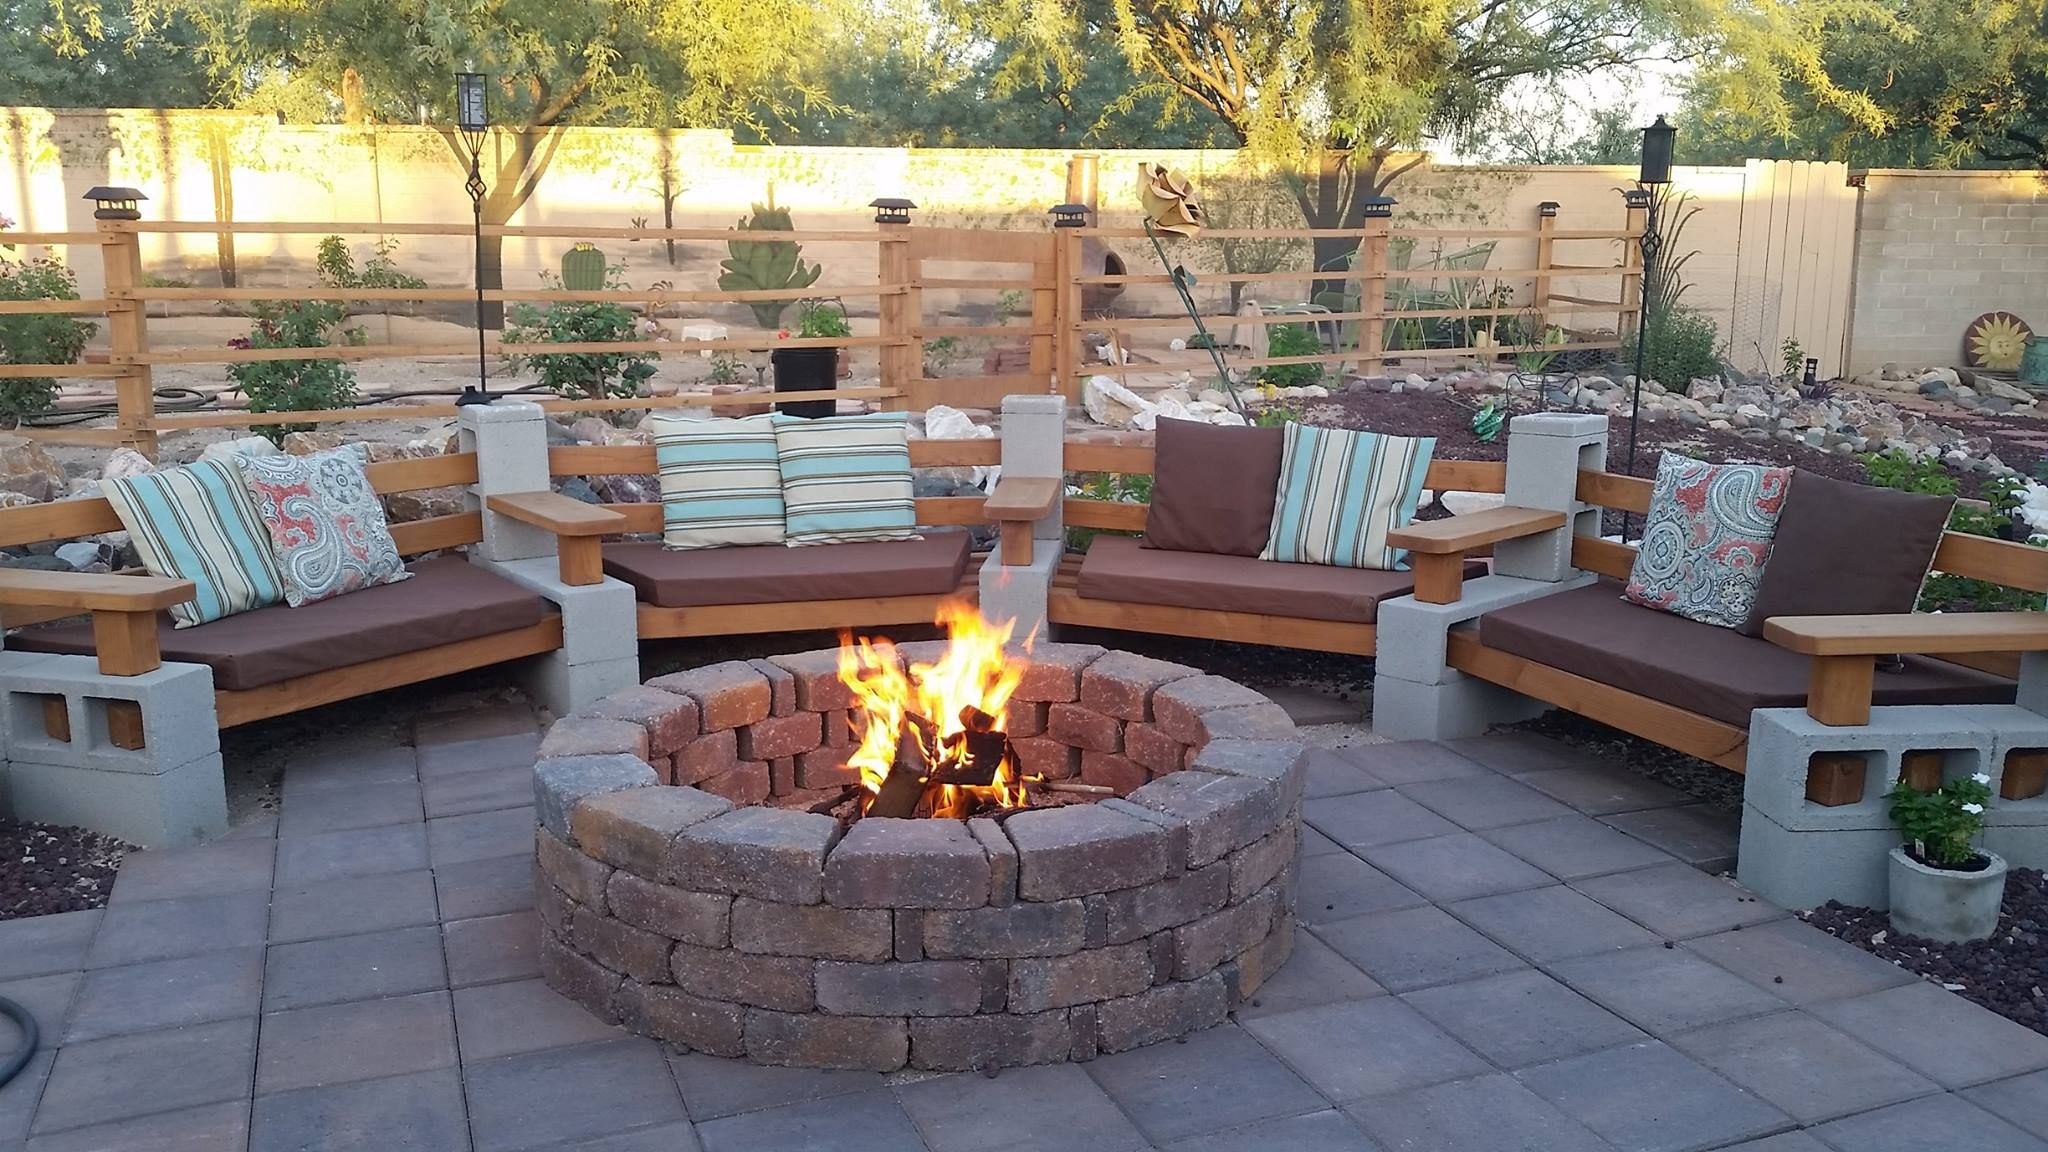 704ba98c7c9751c6f0d979085e1ea4a5 Top Result 50 Fresh Cool Fire Pits